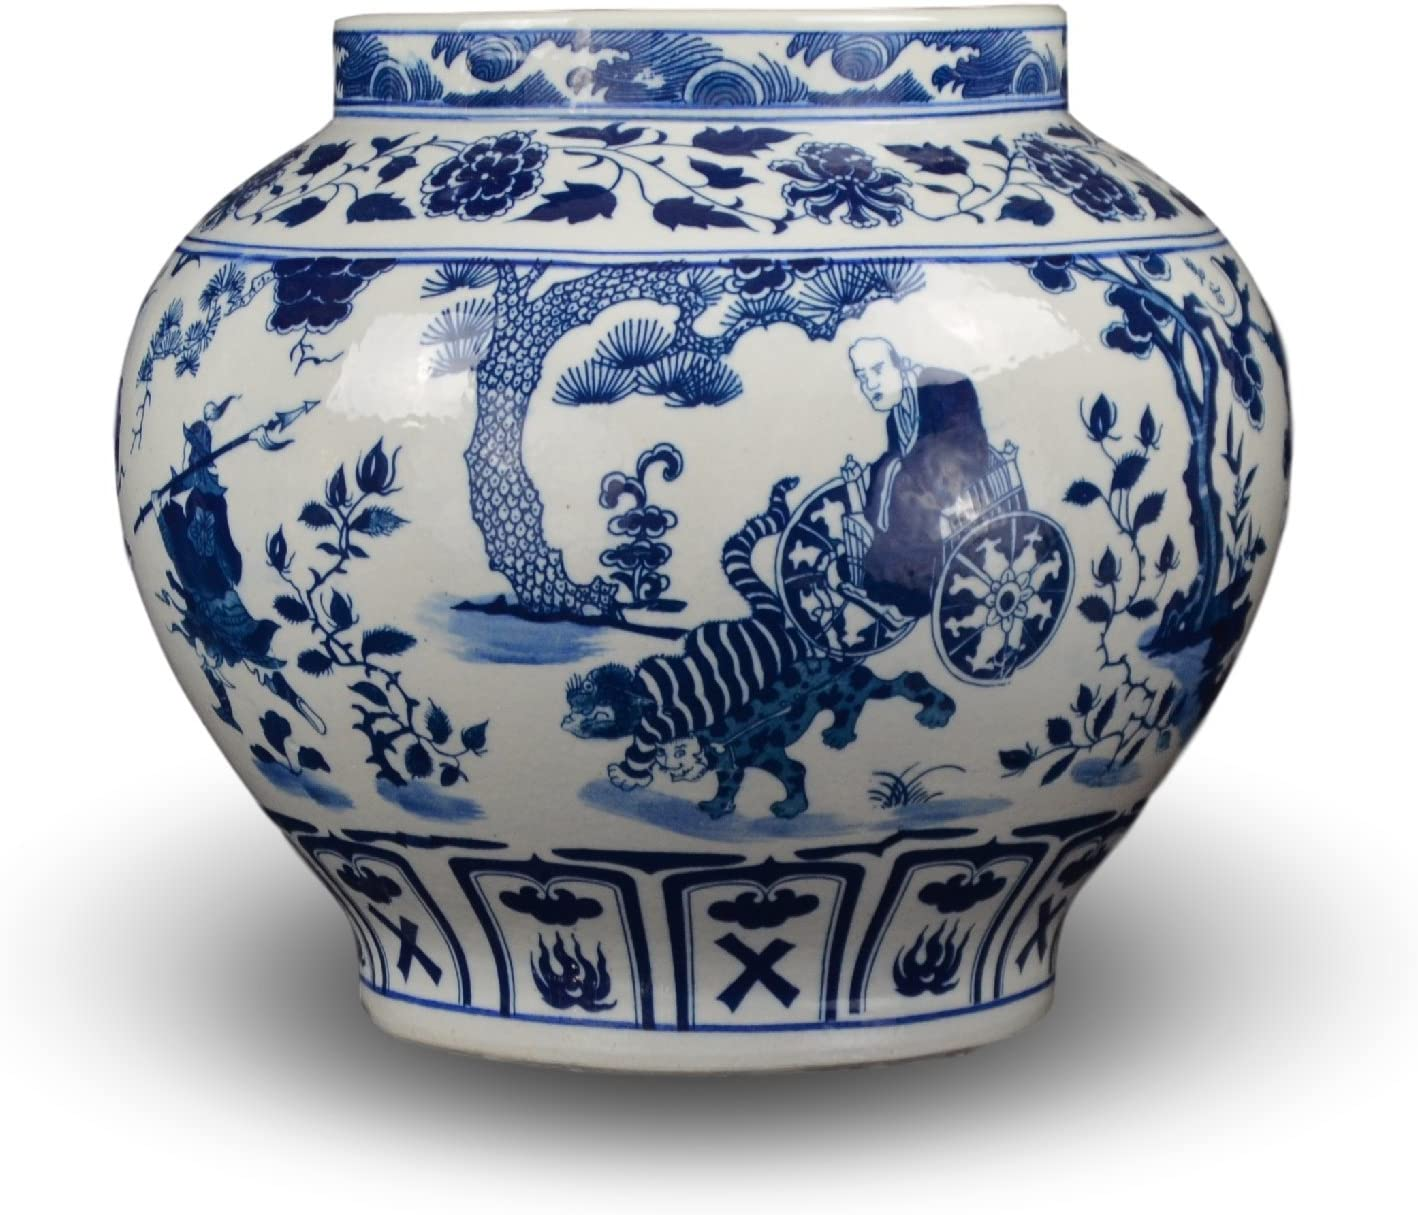 Classic Blue and White Yuan Porcelain Vase